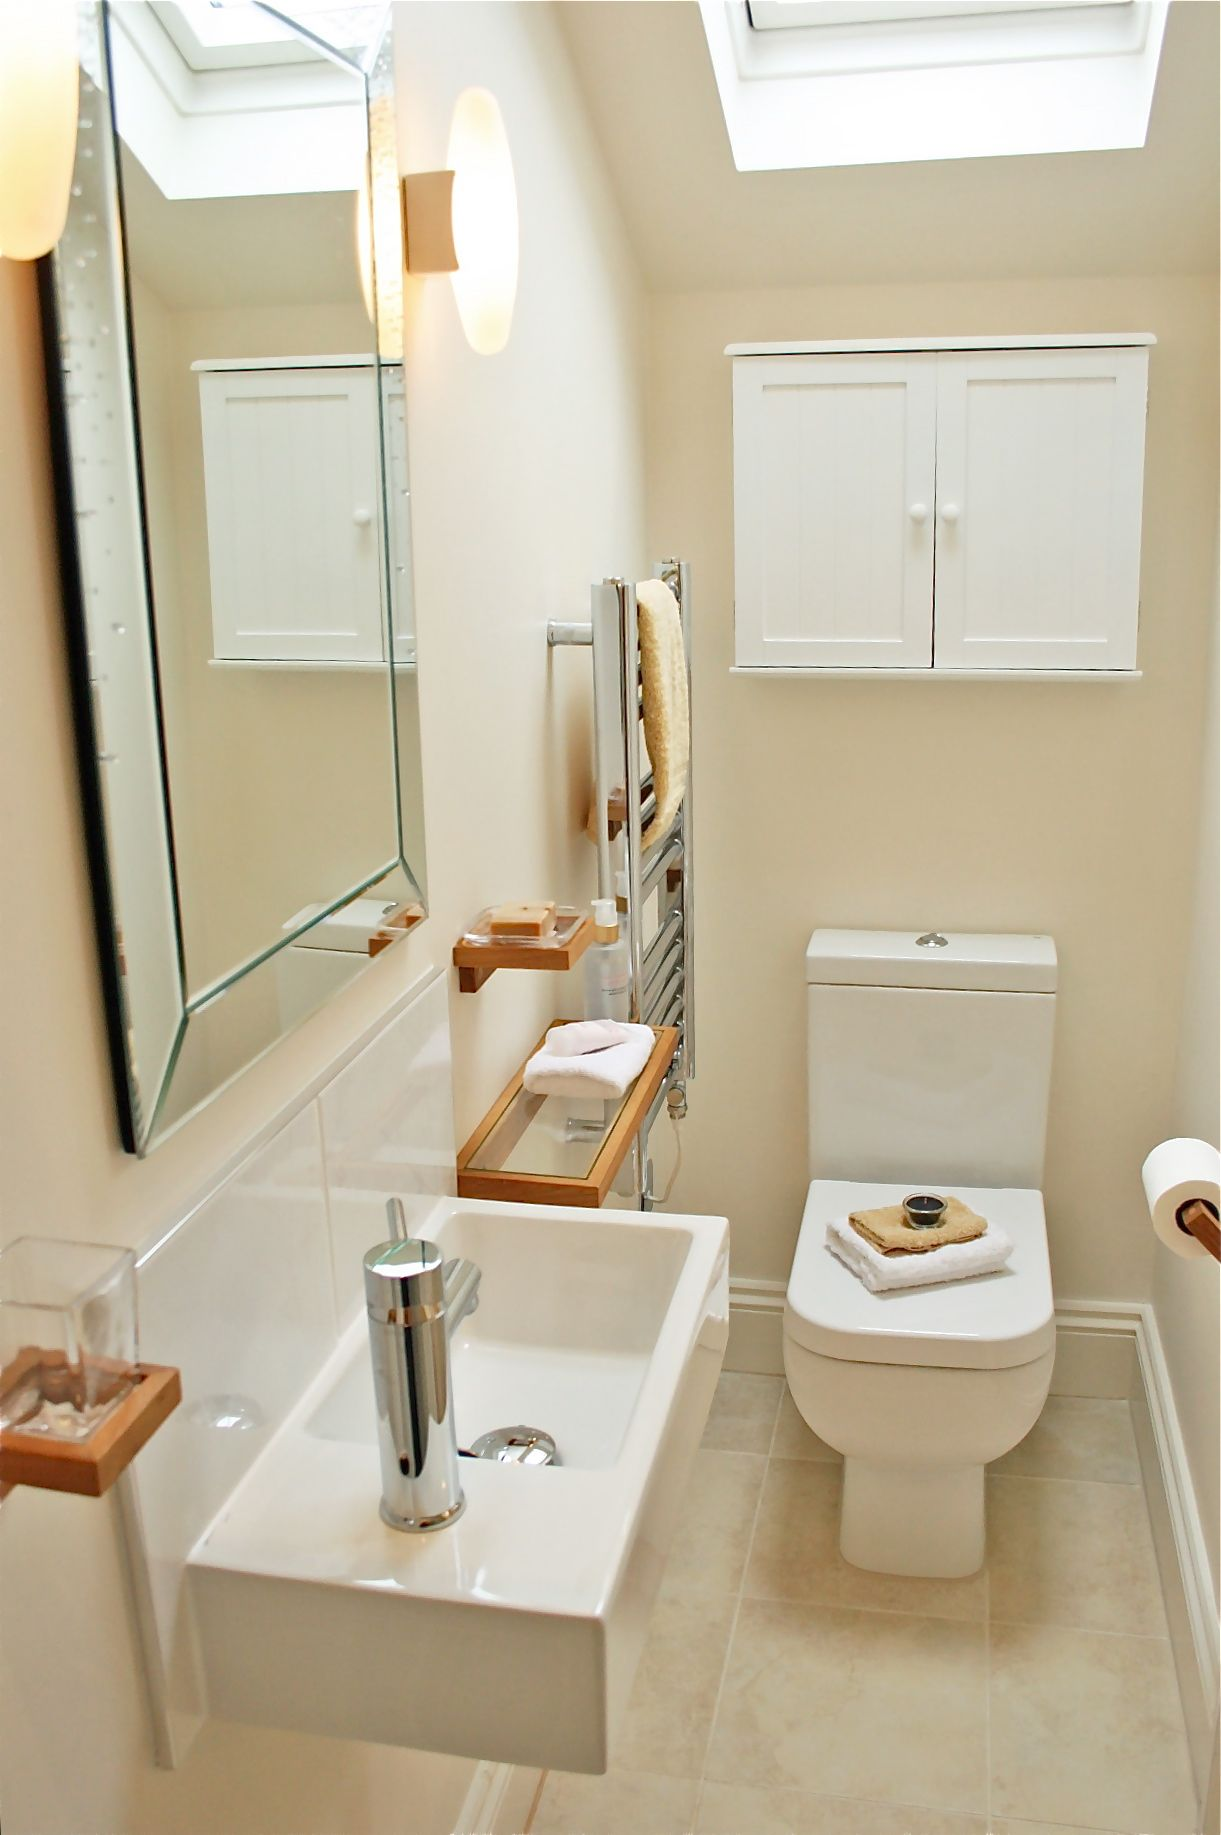 Looks exactly like the downstairs toilet in my brothers house